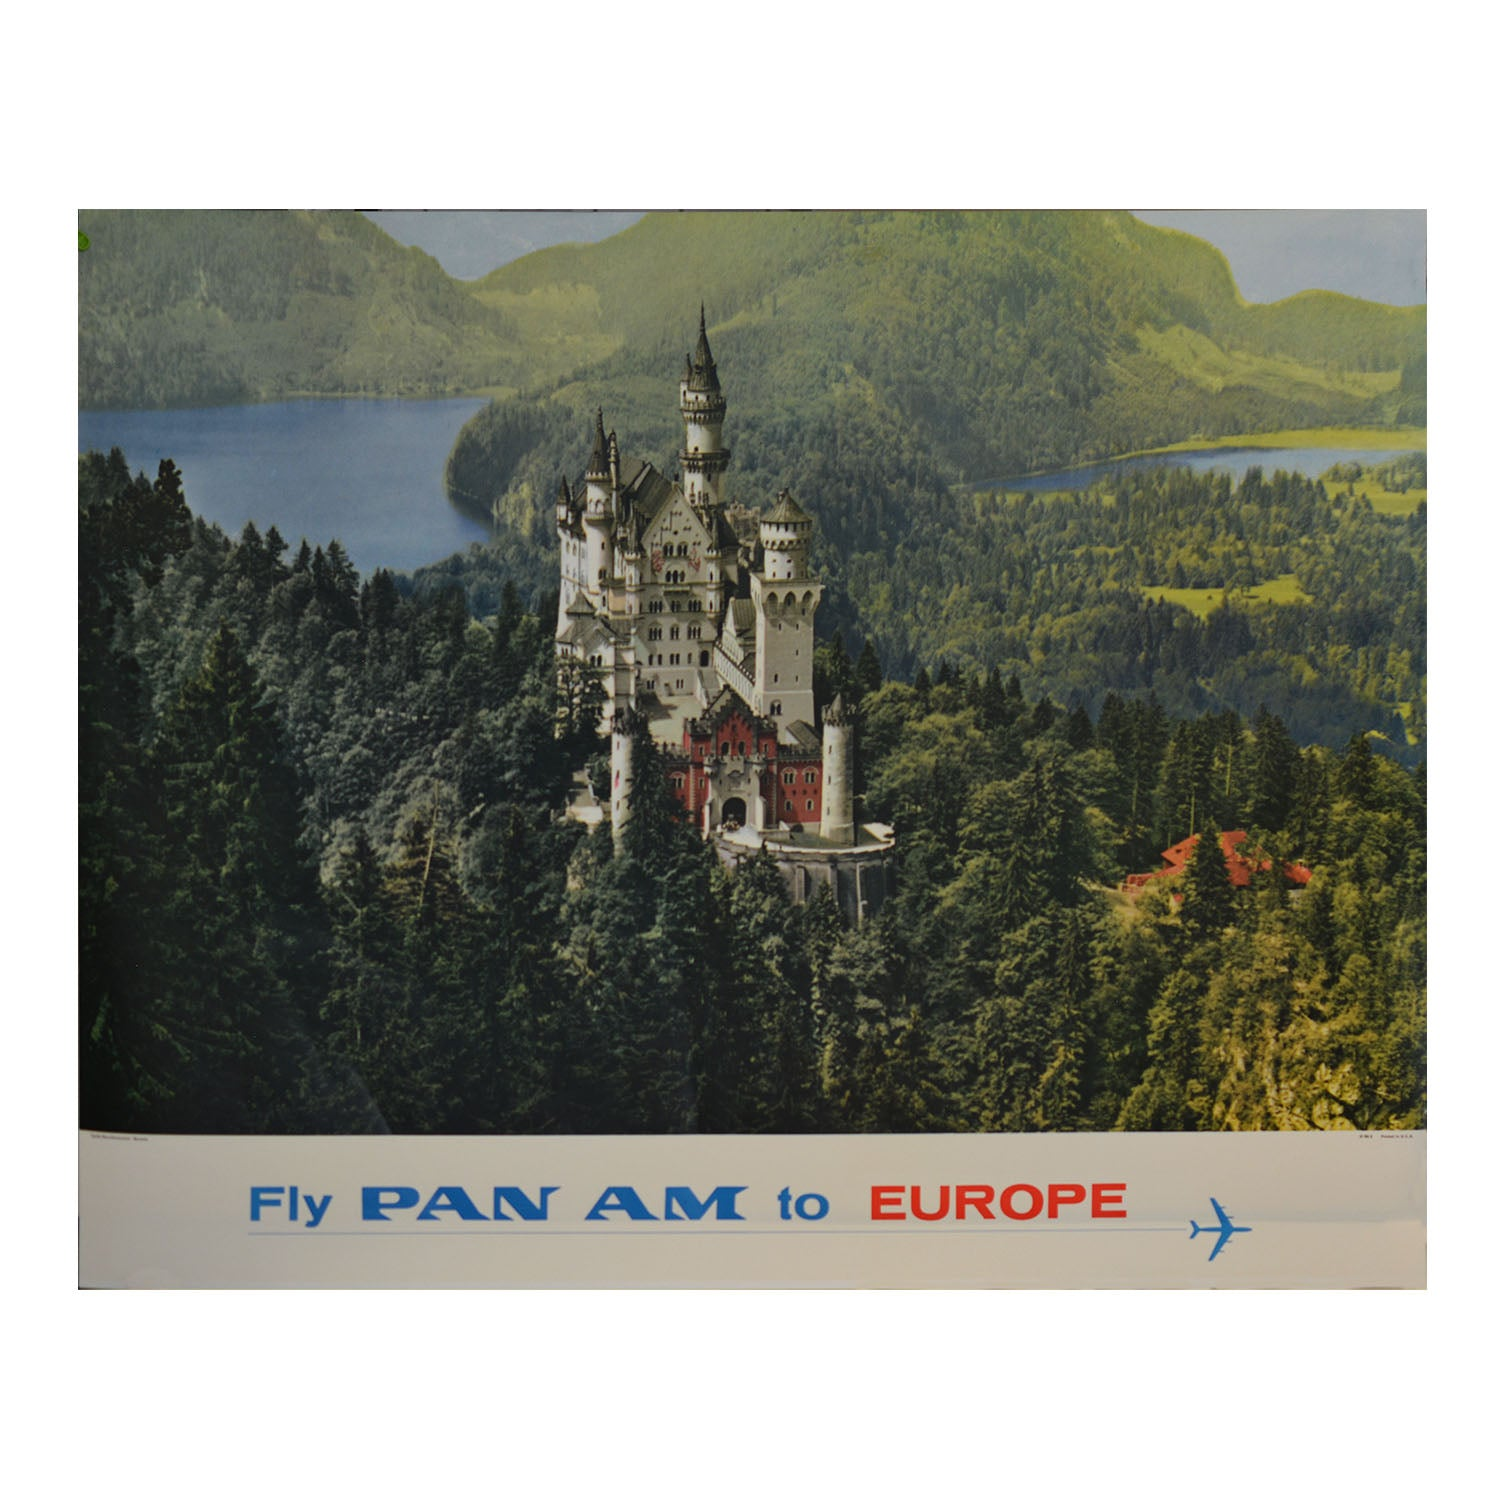 Original poster: Fly Pan Am to Europe